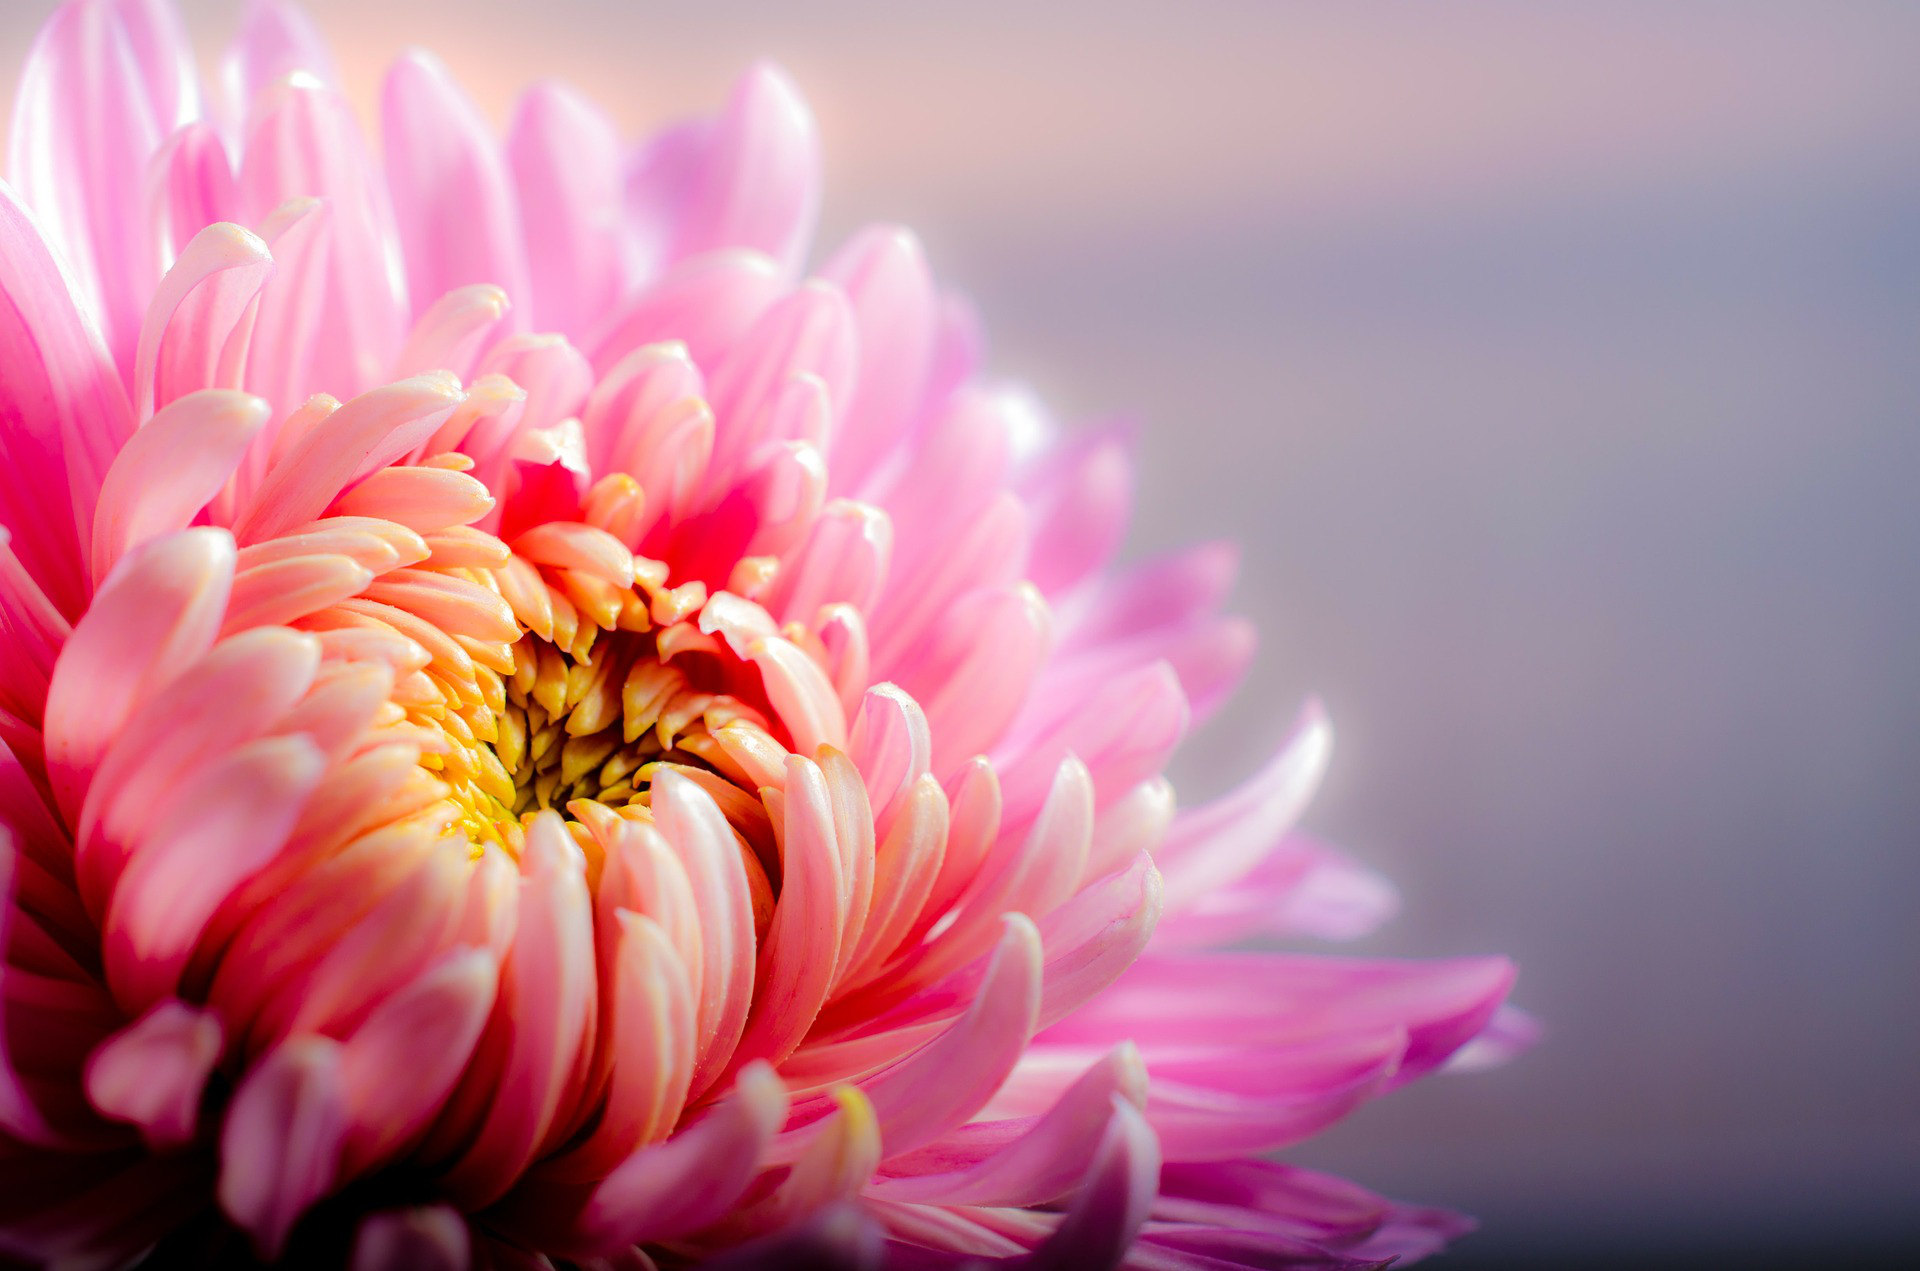 chrysanthemum-202483_1920